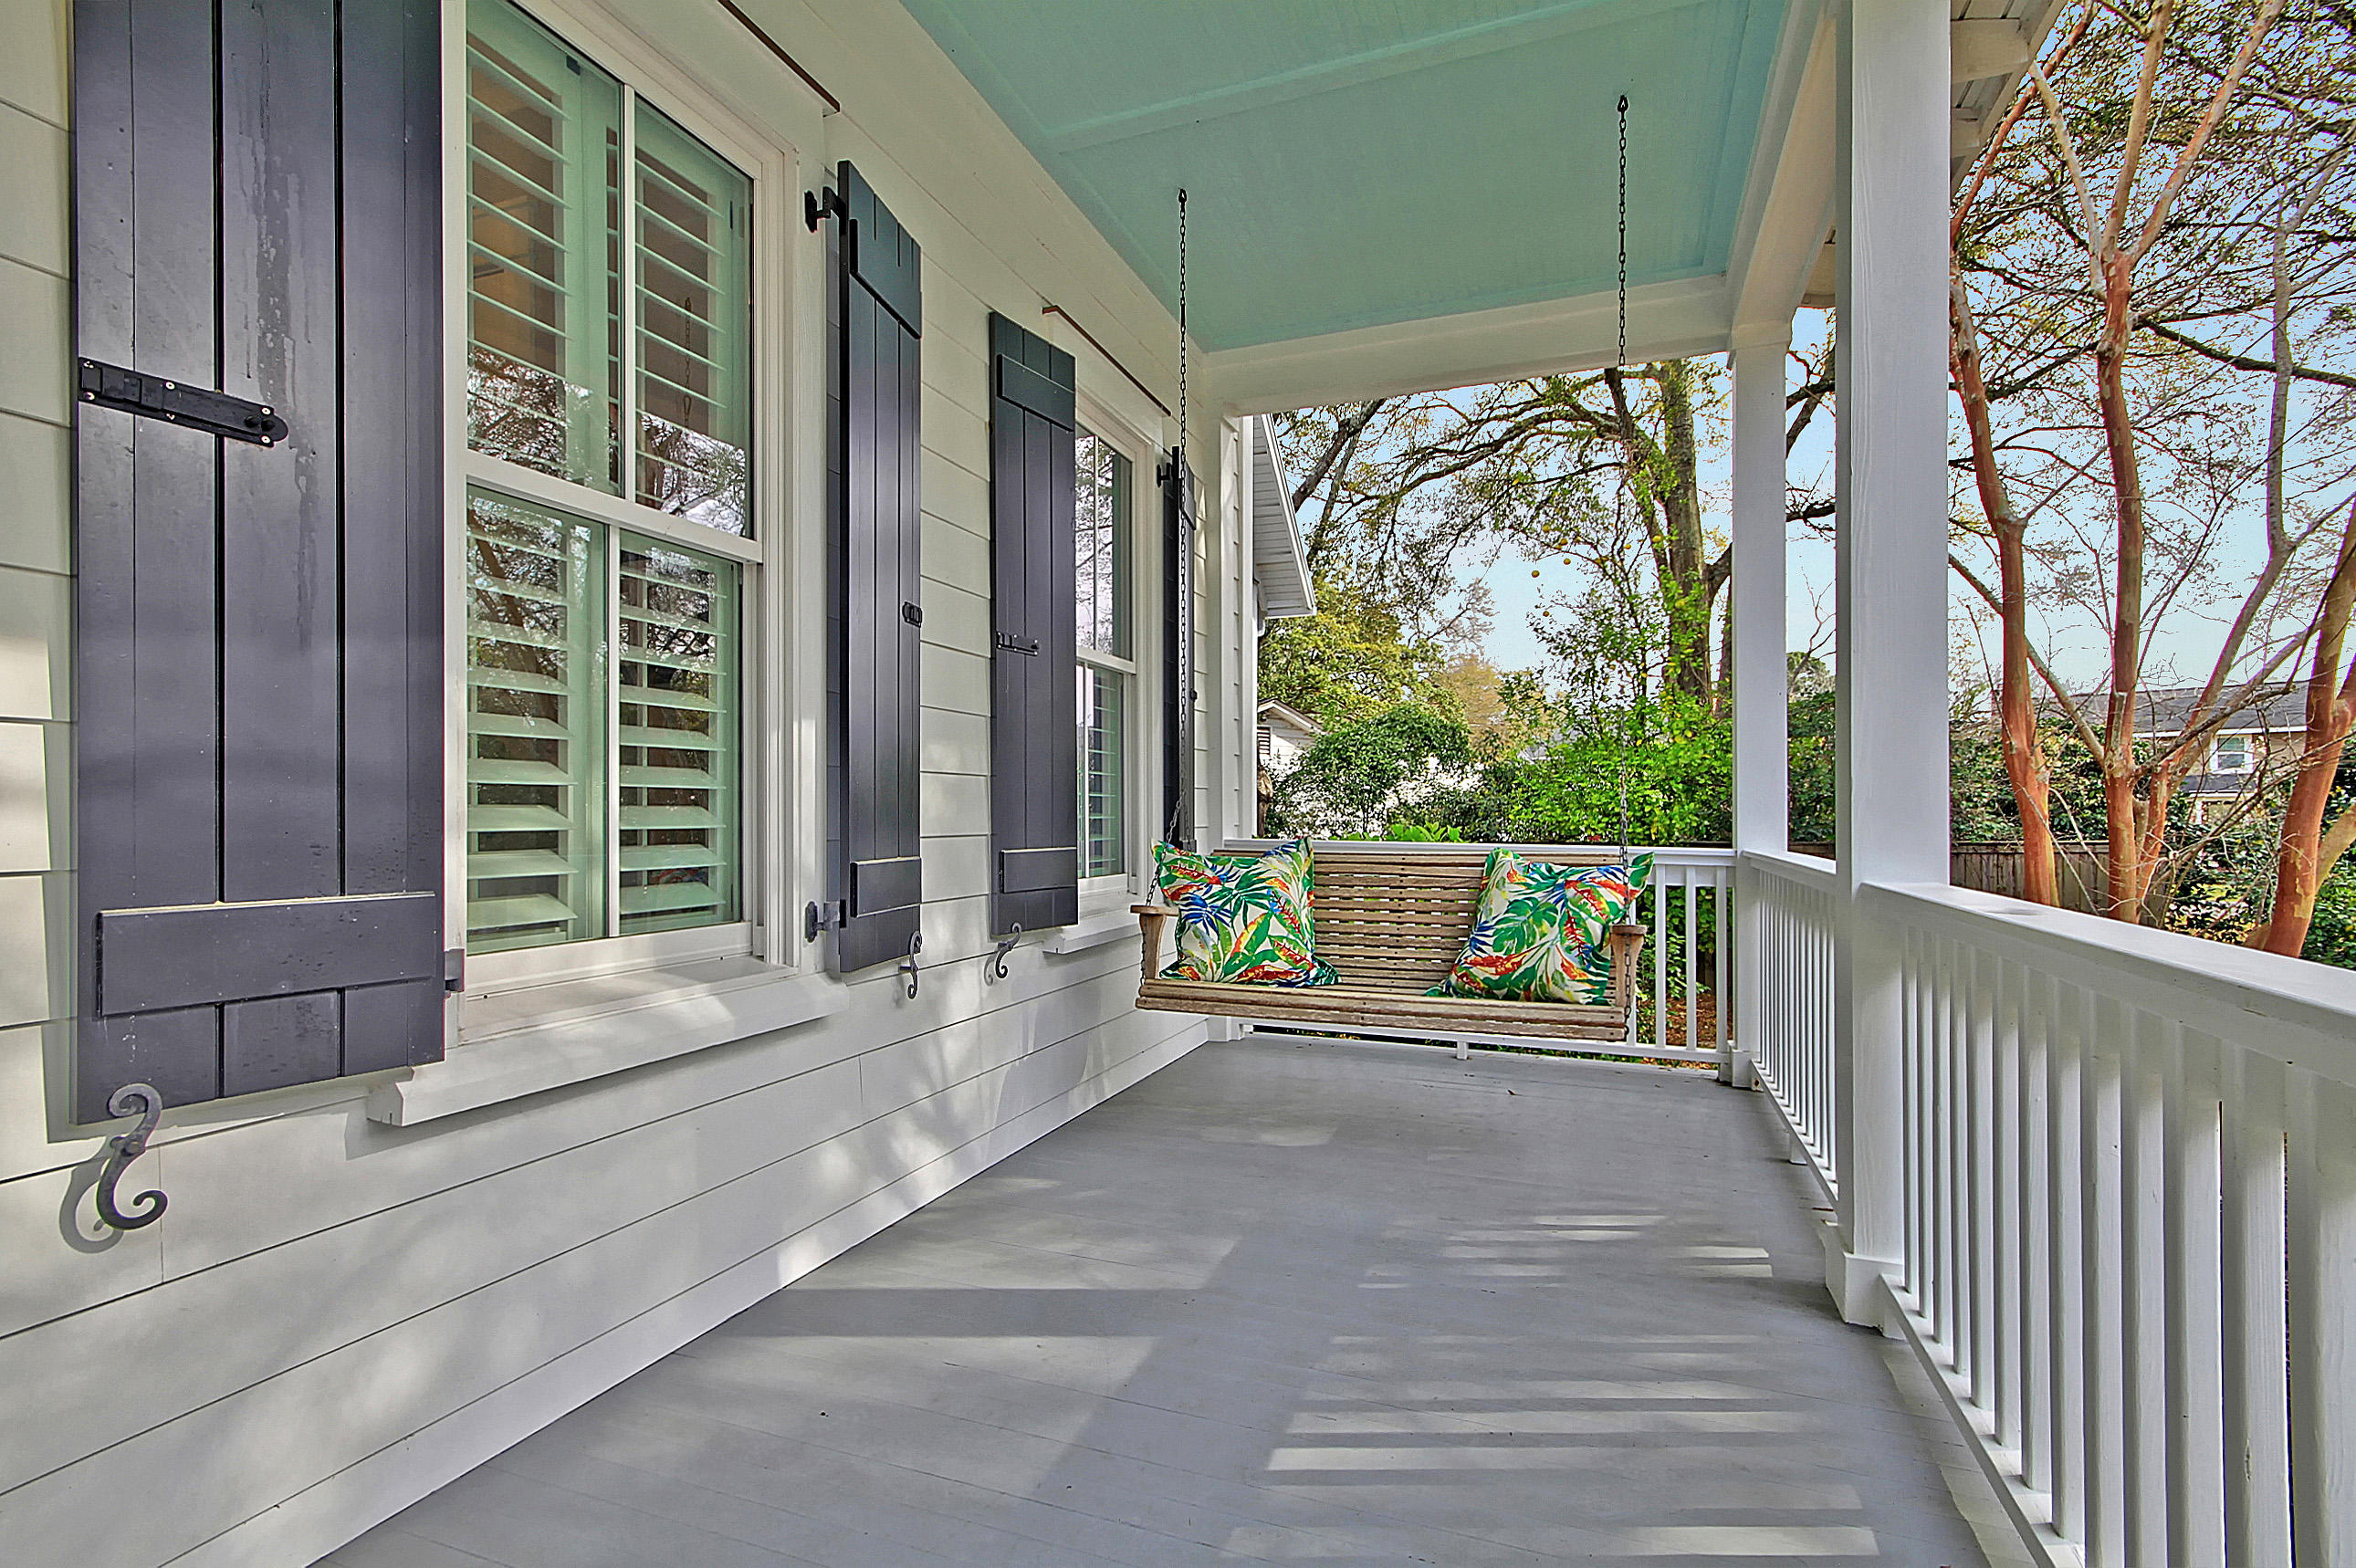 Old Mt Pleasant Homes For Sale - 718 Magnolia, Mount Pleasant, SC - 23